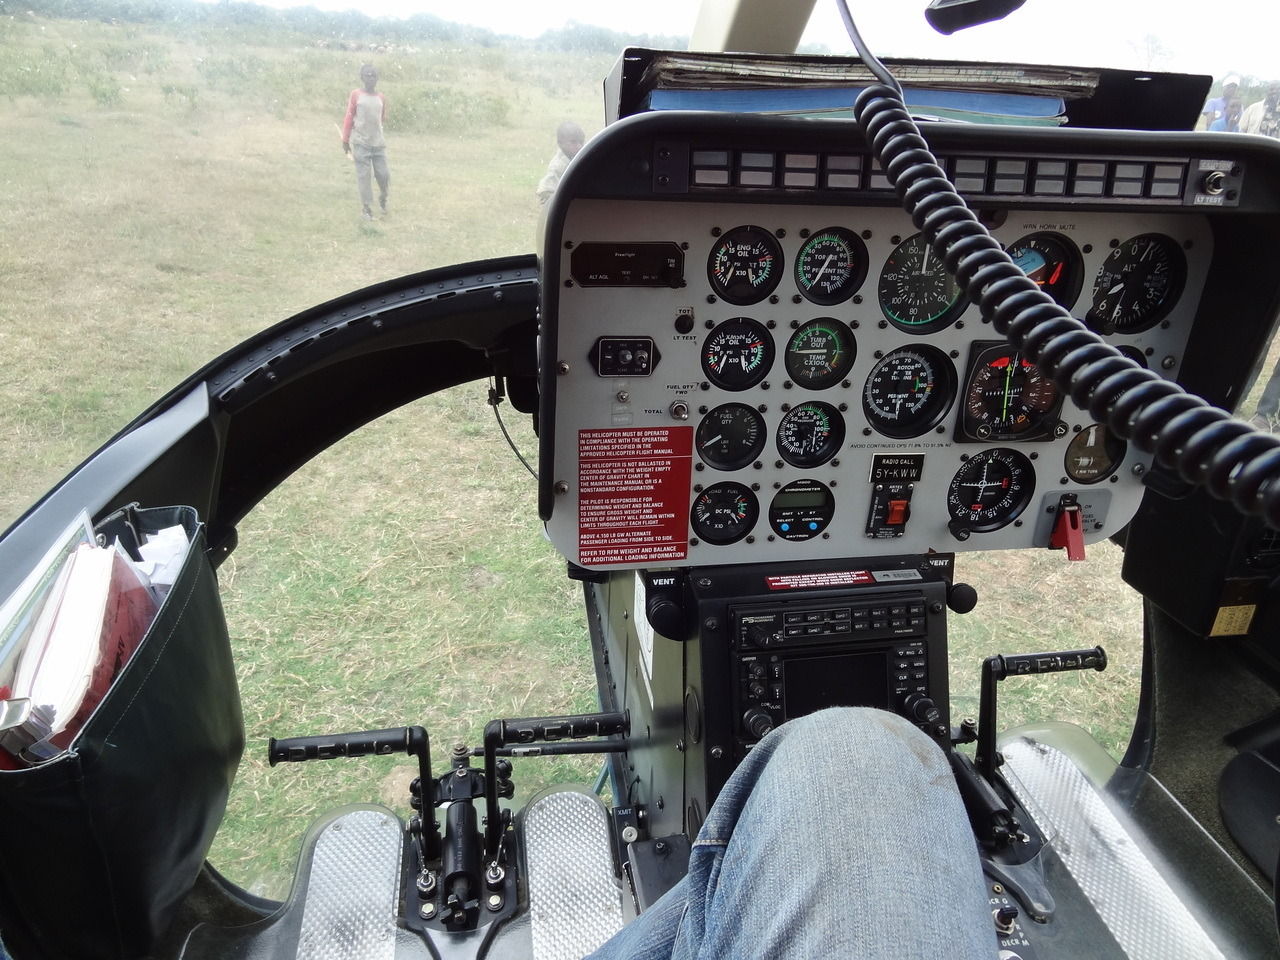 Co-pilot seat of the helo!